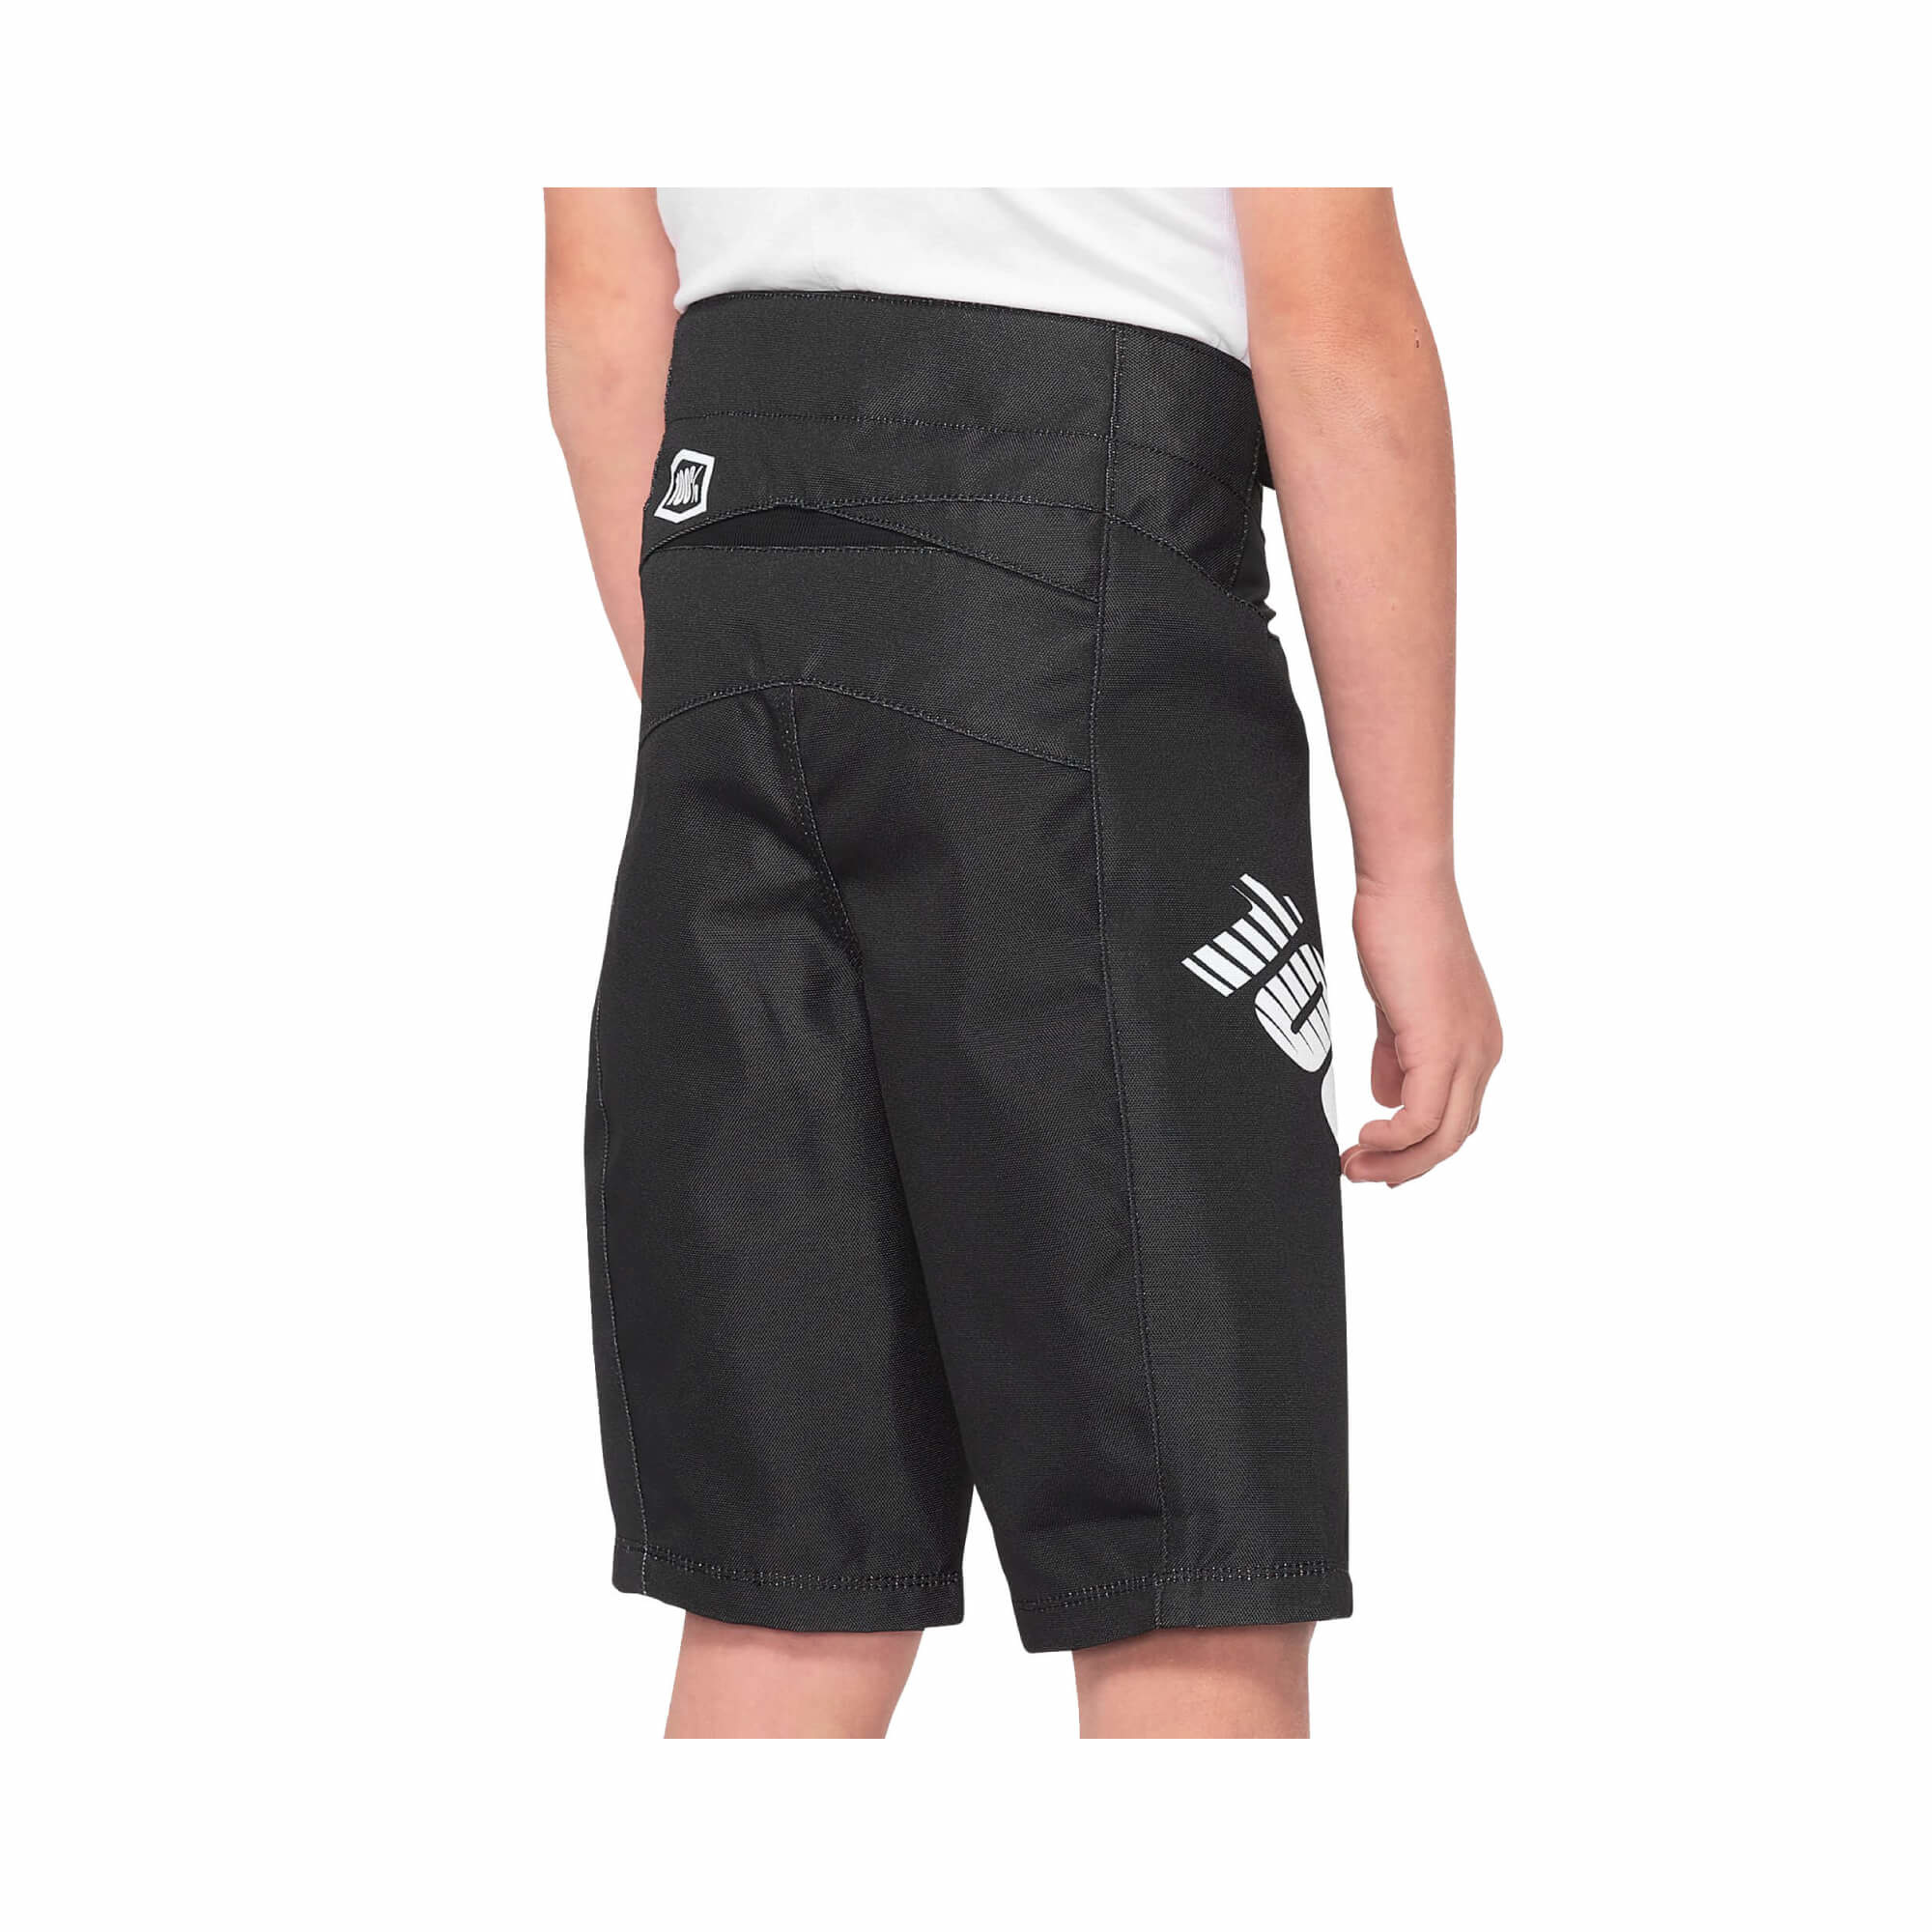 R-Core Youth Shorts 2021-2